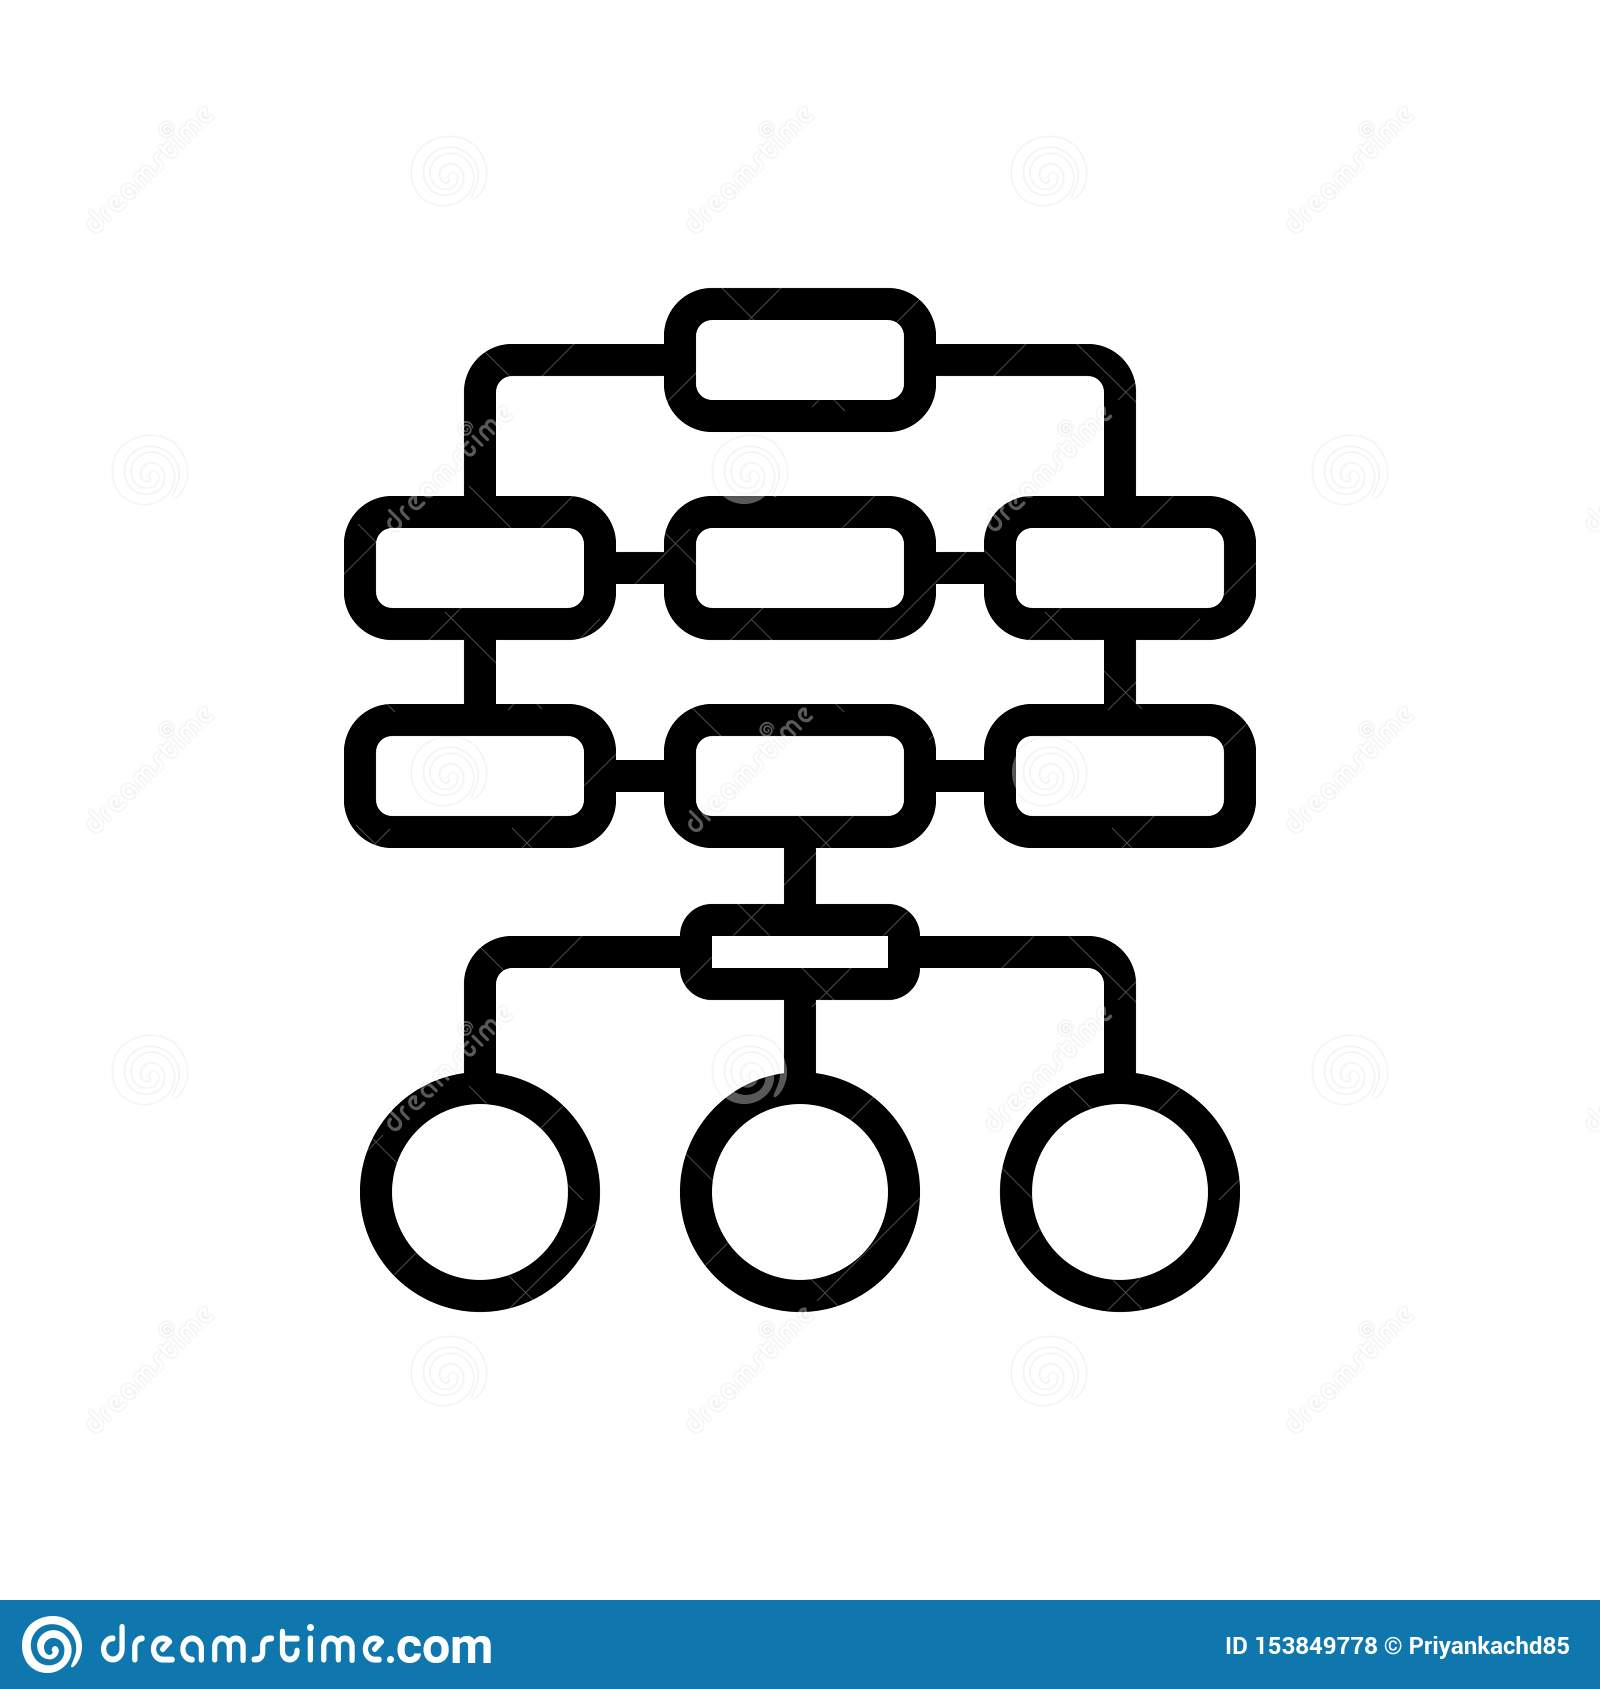 Black line icon for Sitemap, layout and hierarchy